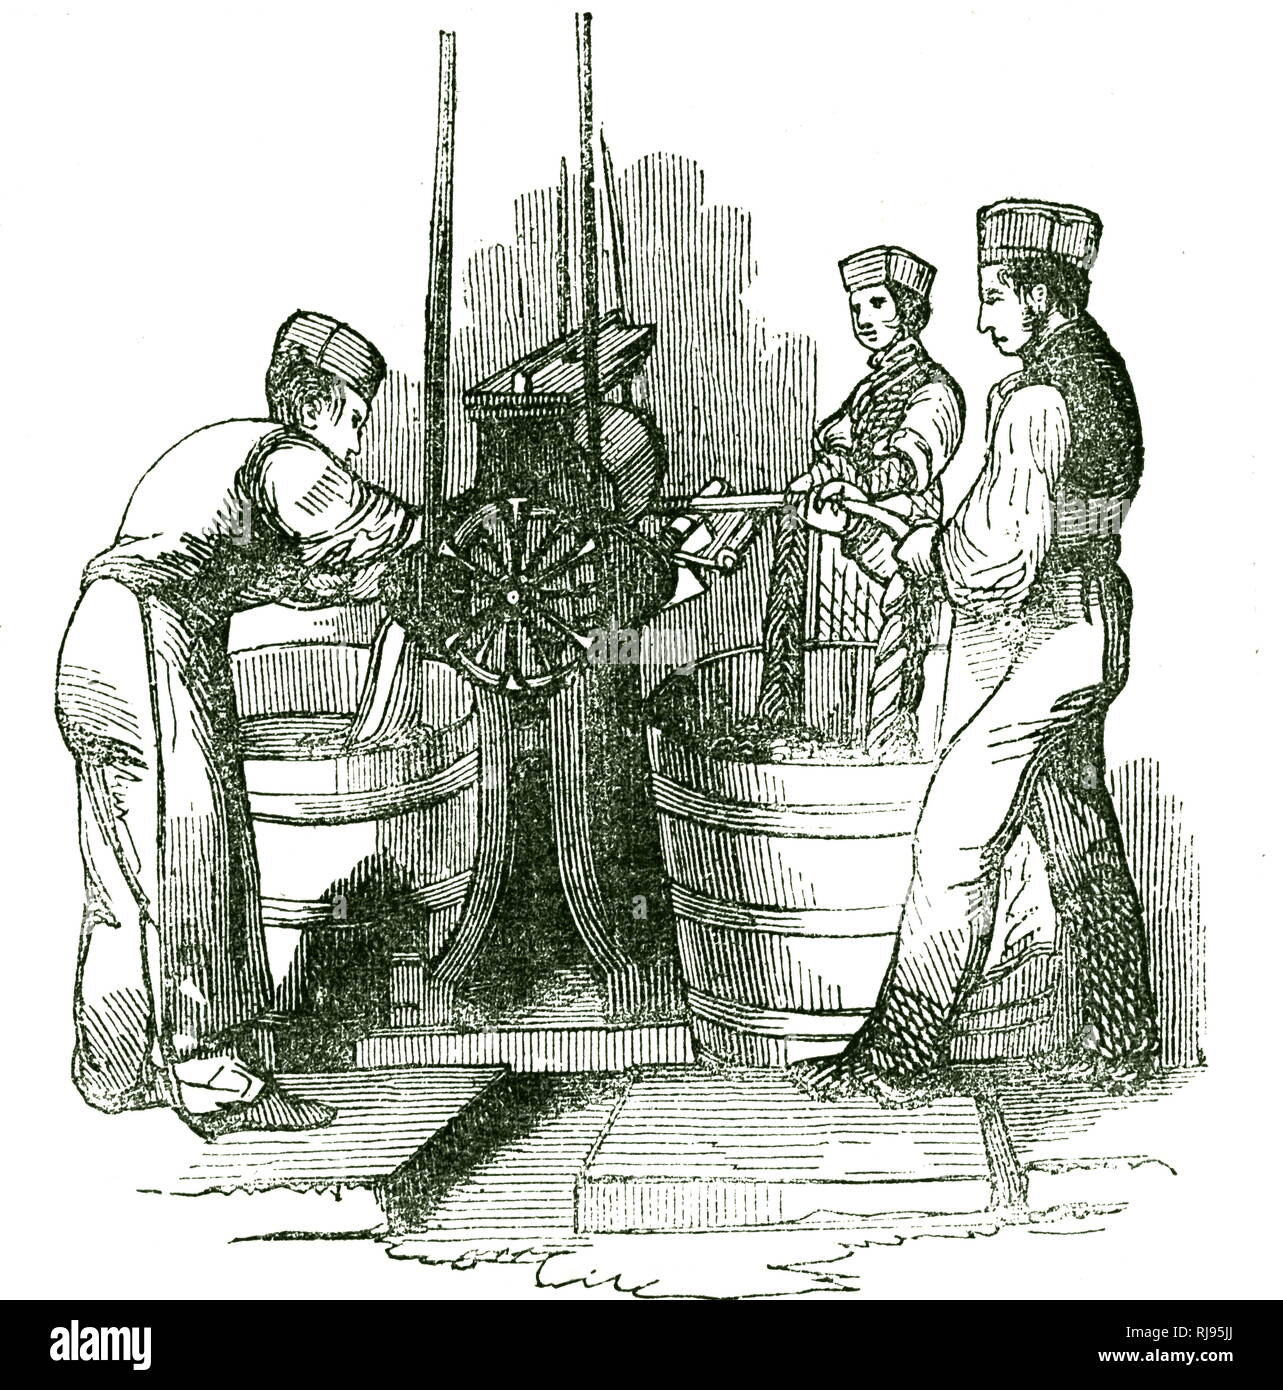 An engraving depicting the production of the worsted using a warp-scouring. Dated 19th century - Stock Image